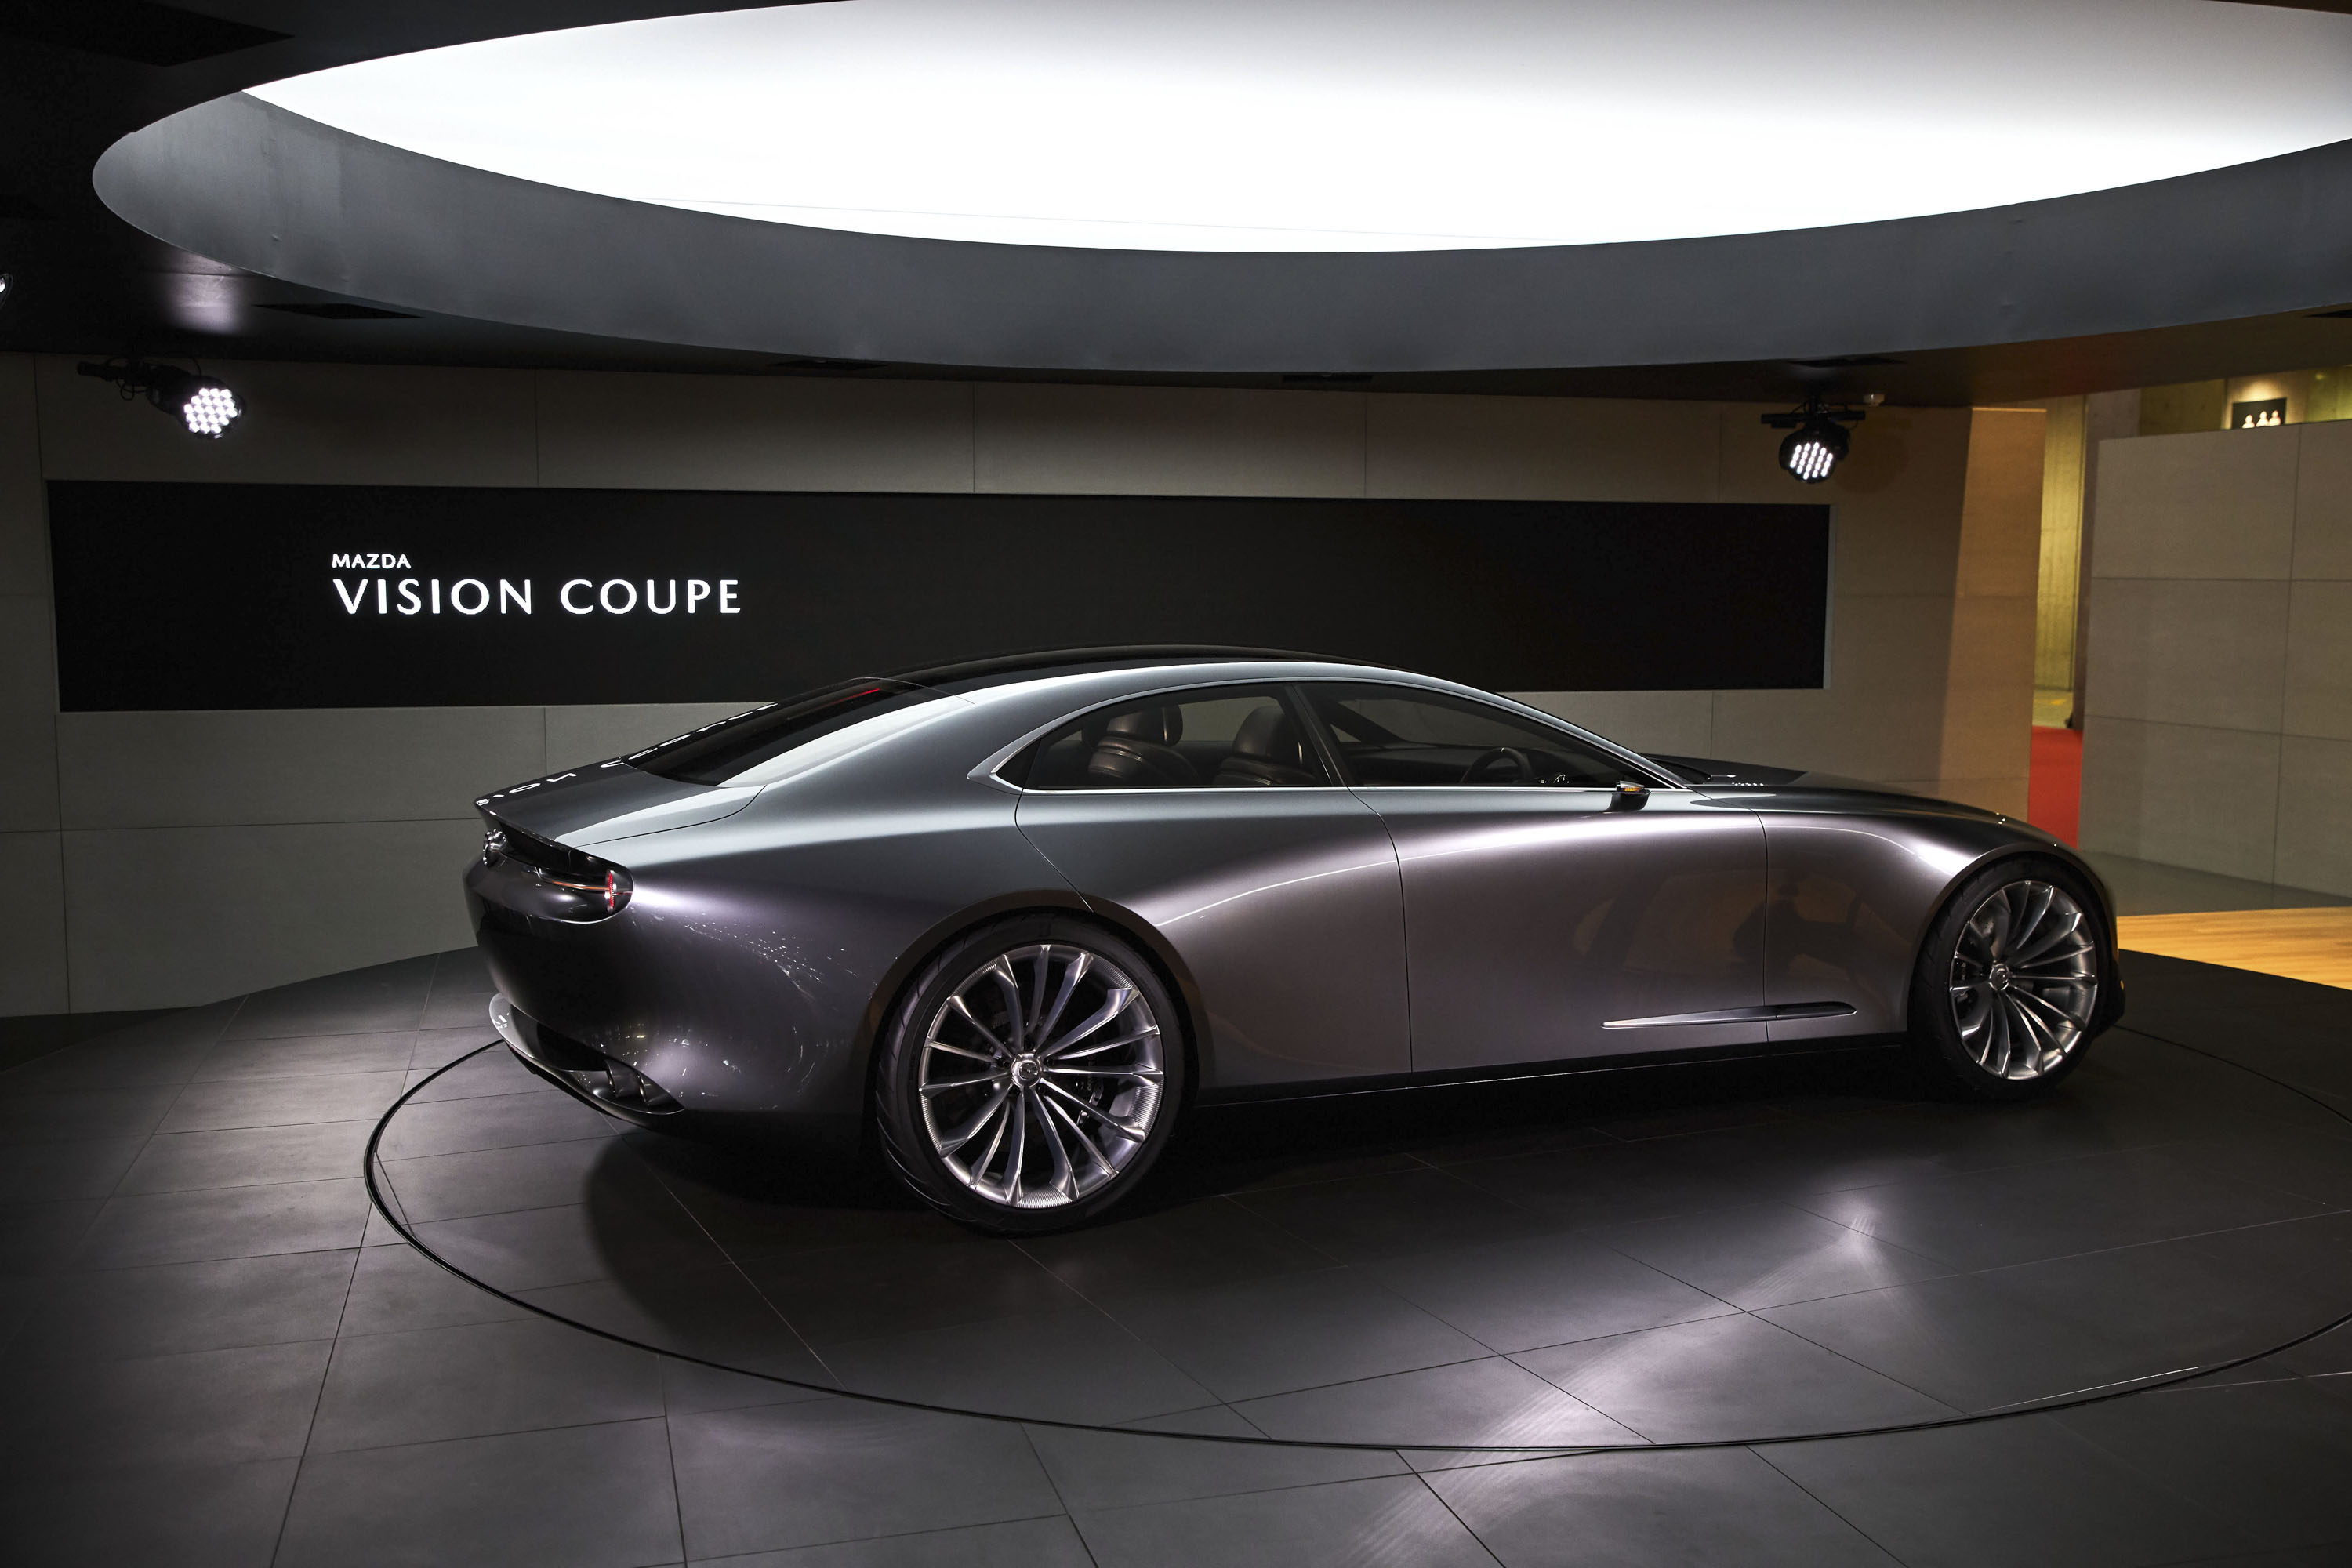 https://pictures.topspeed.com/IMG/jpg/201710/2017-mazda-vision-coupe-c-7.jpg